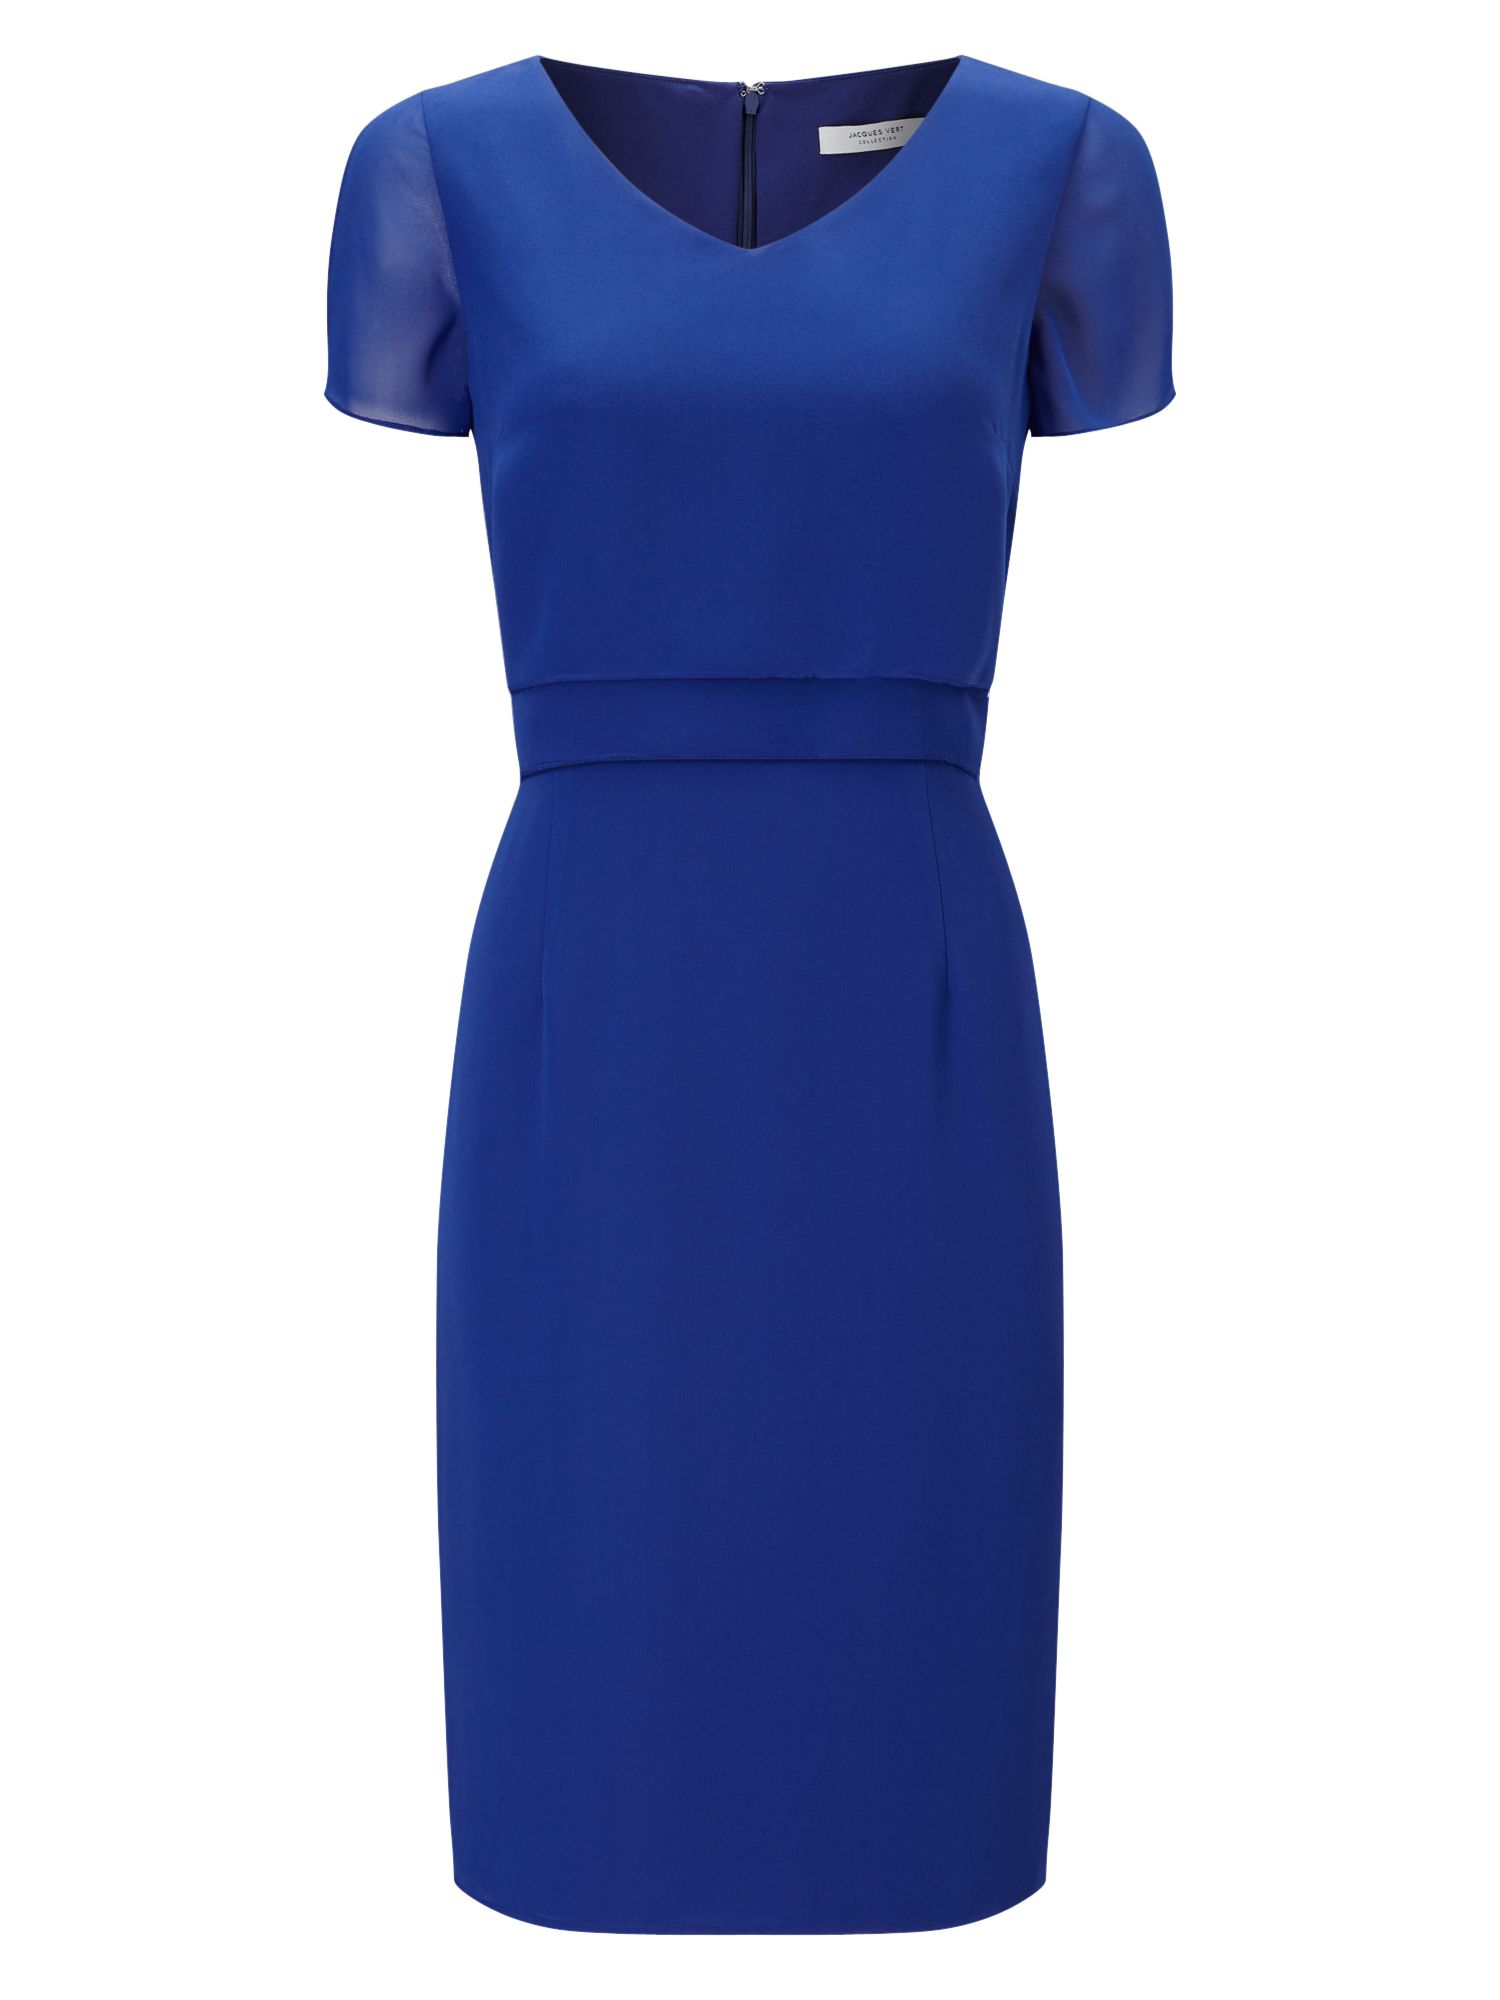 Jacques Vert Soft Layers Dress, Blue